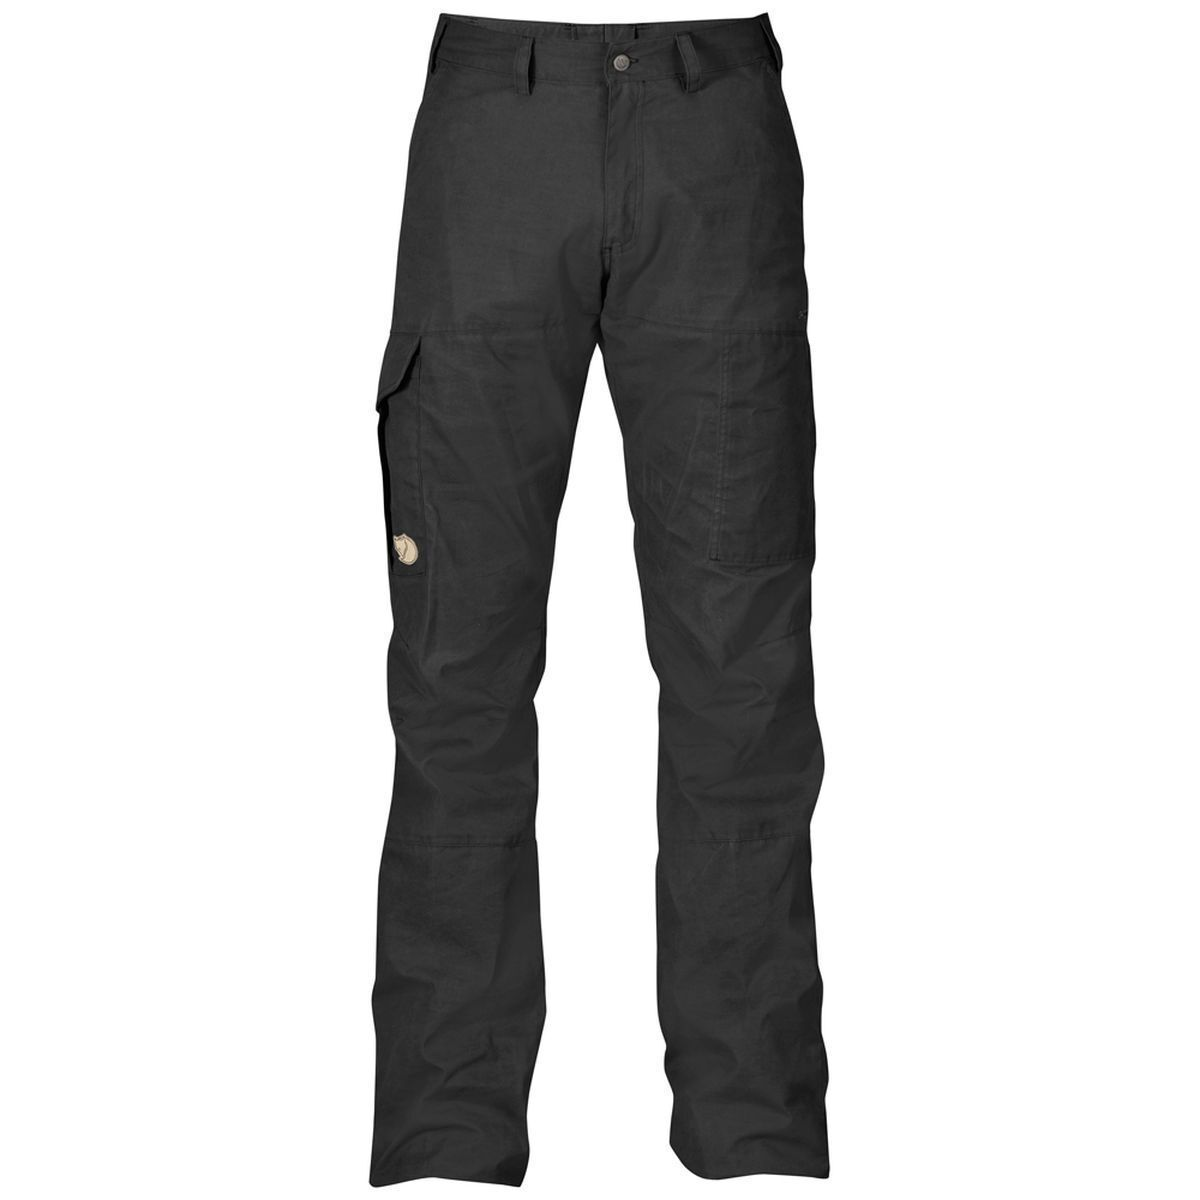 Fjäll Räven Karl Trousers, Dark Grey, Size 48,